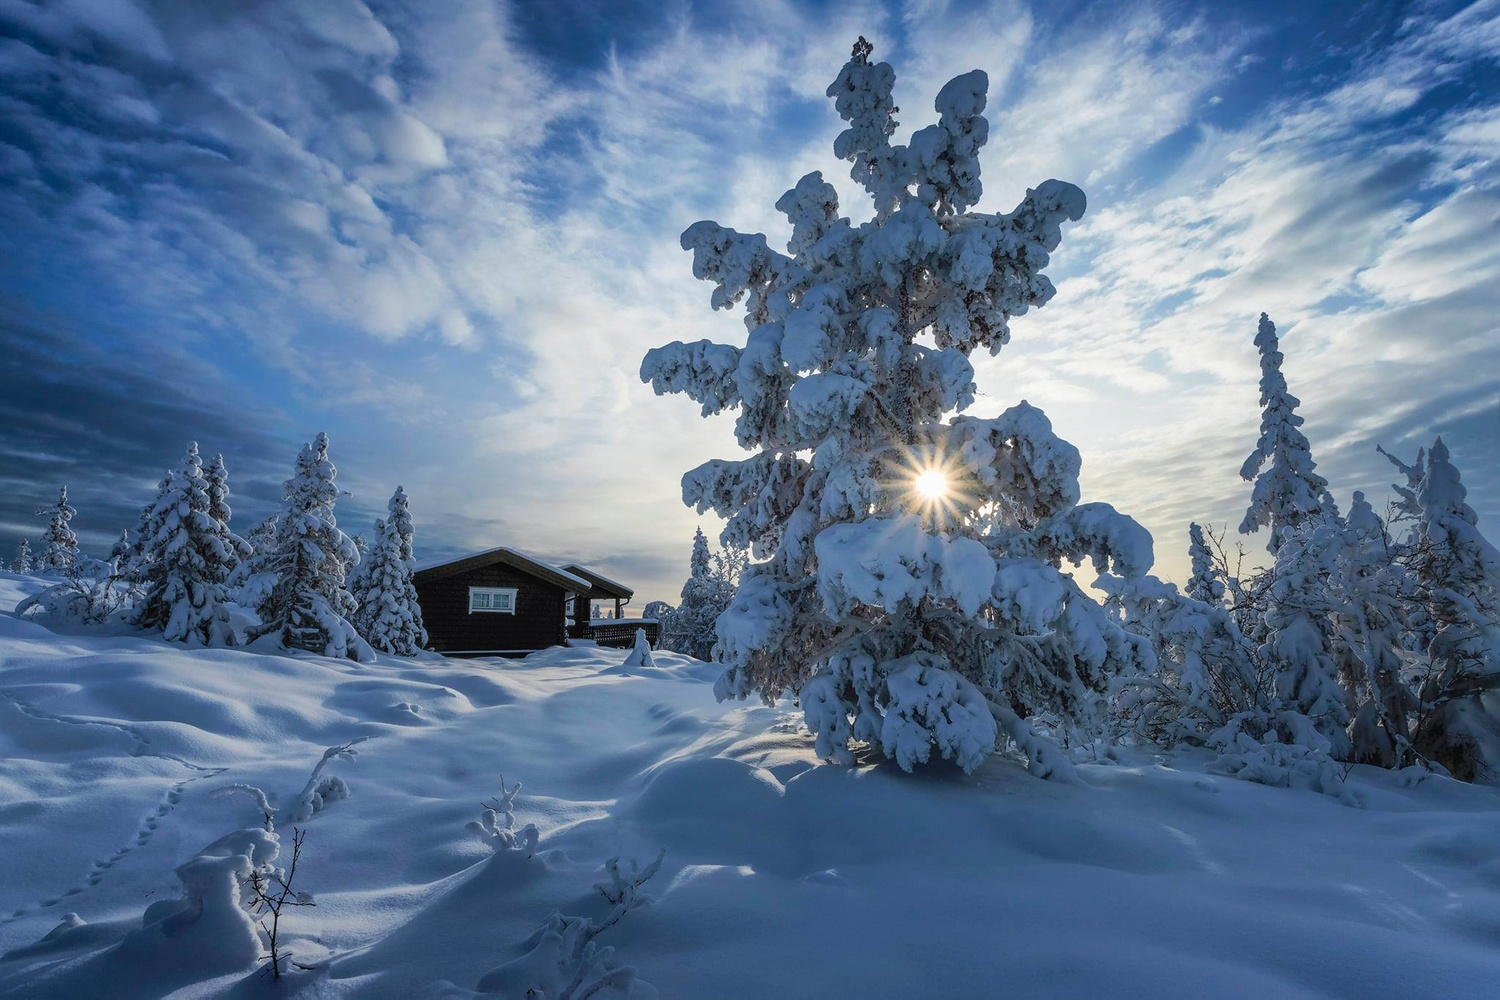 Winter is here by Rickard Eriksson